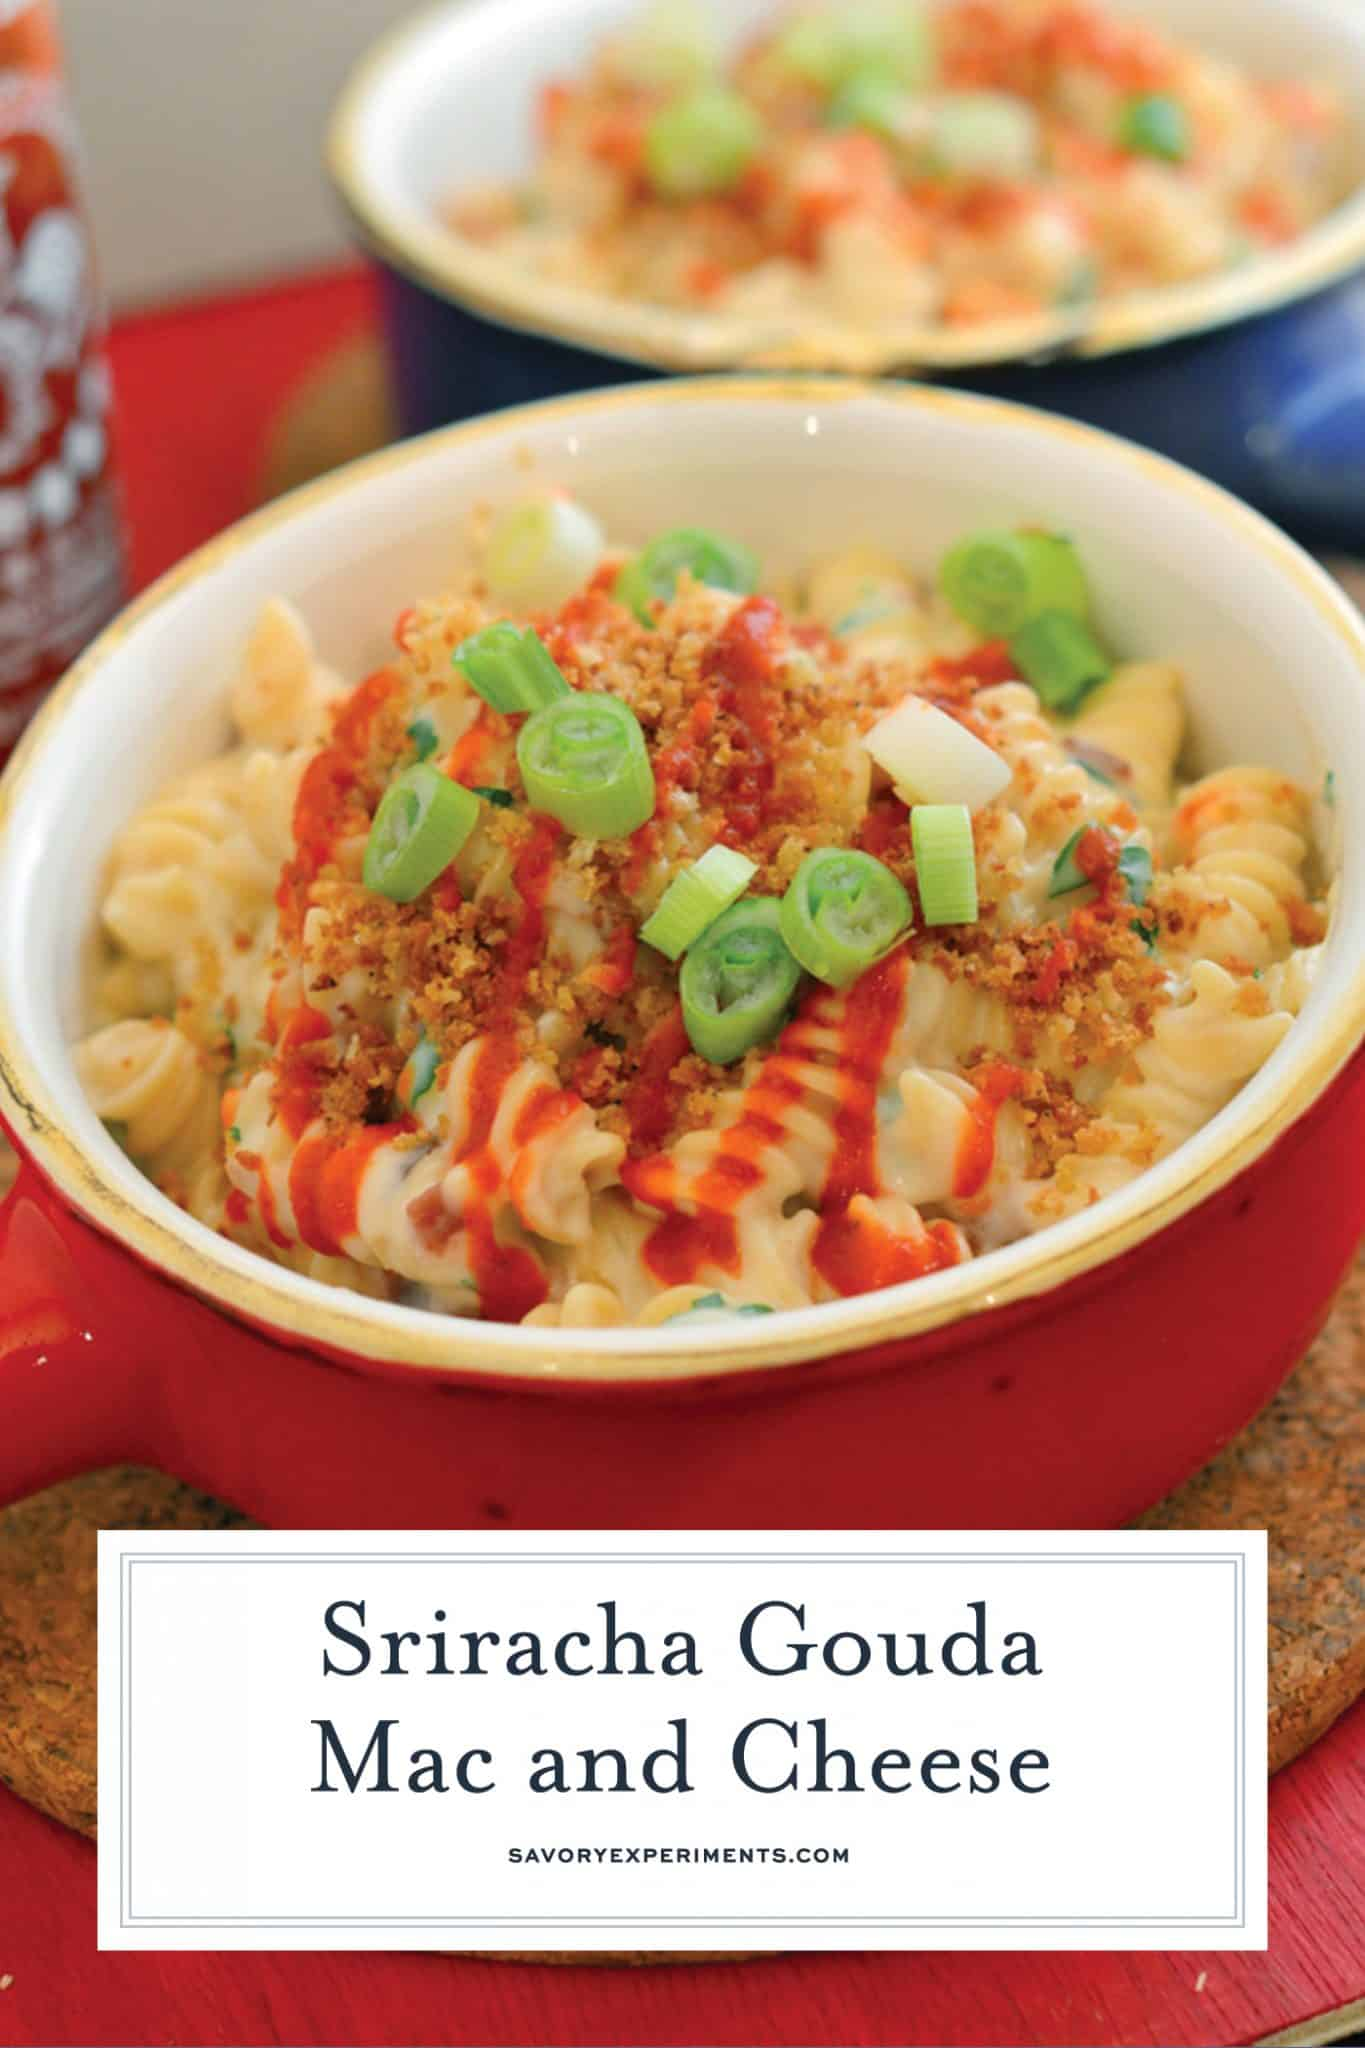 This Sriracha Gouda Mac and Cheese Recipe takes your mac and cheese to new levels with creamy smoked gouda and spicy and sweet Sriracha! #gourmetmacandcheese #creamymacandcheeserecipe #spicymacandcheese www.savoryexperiments.com